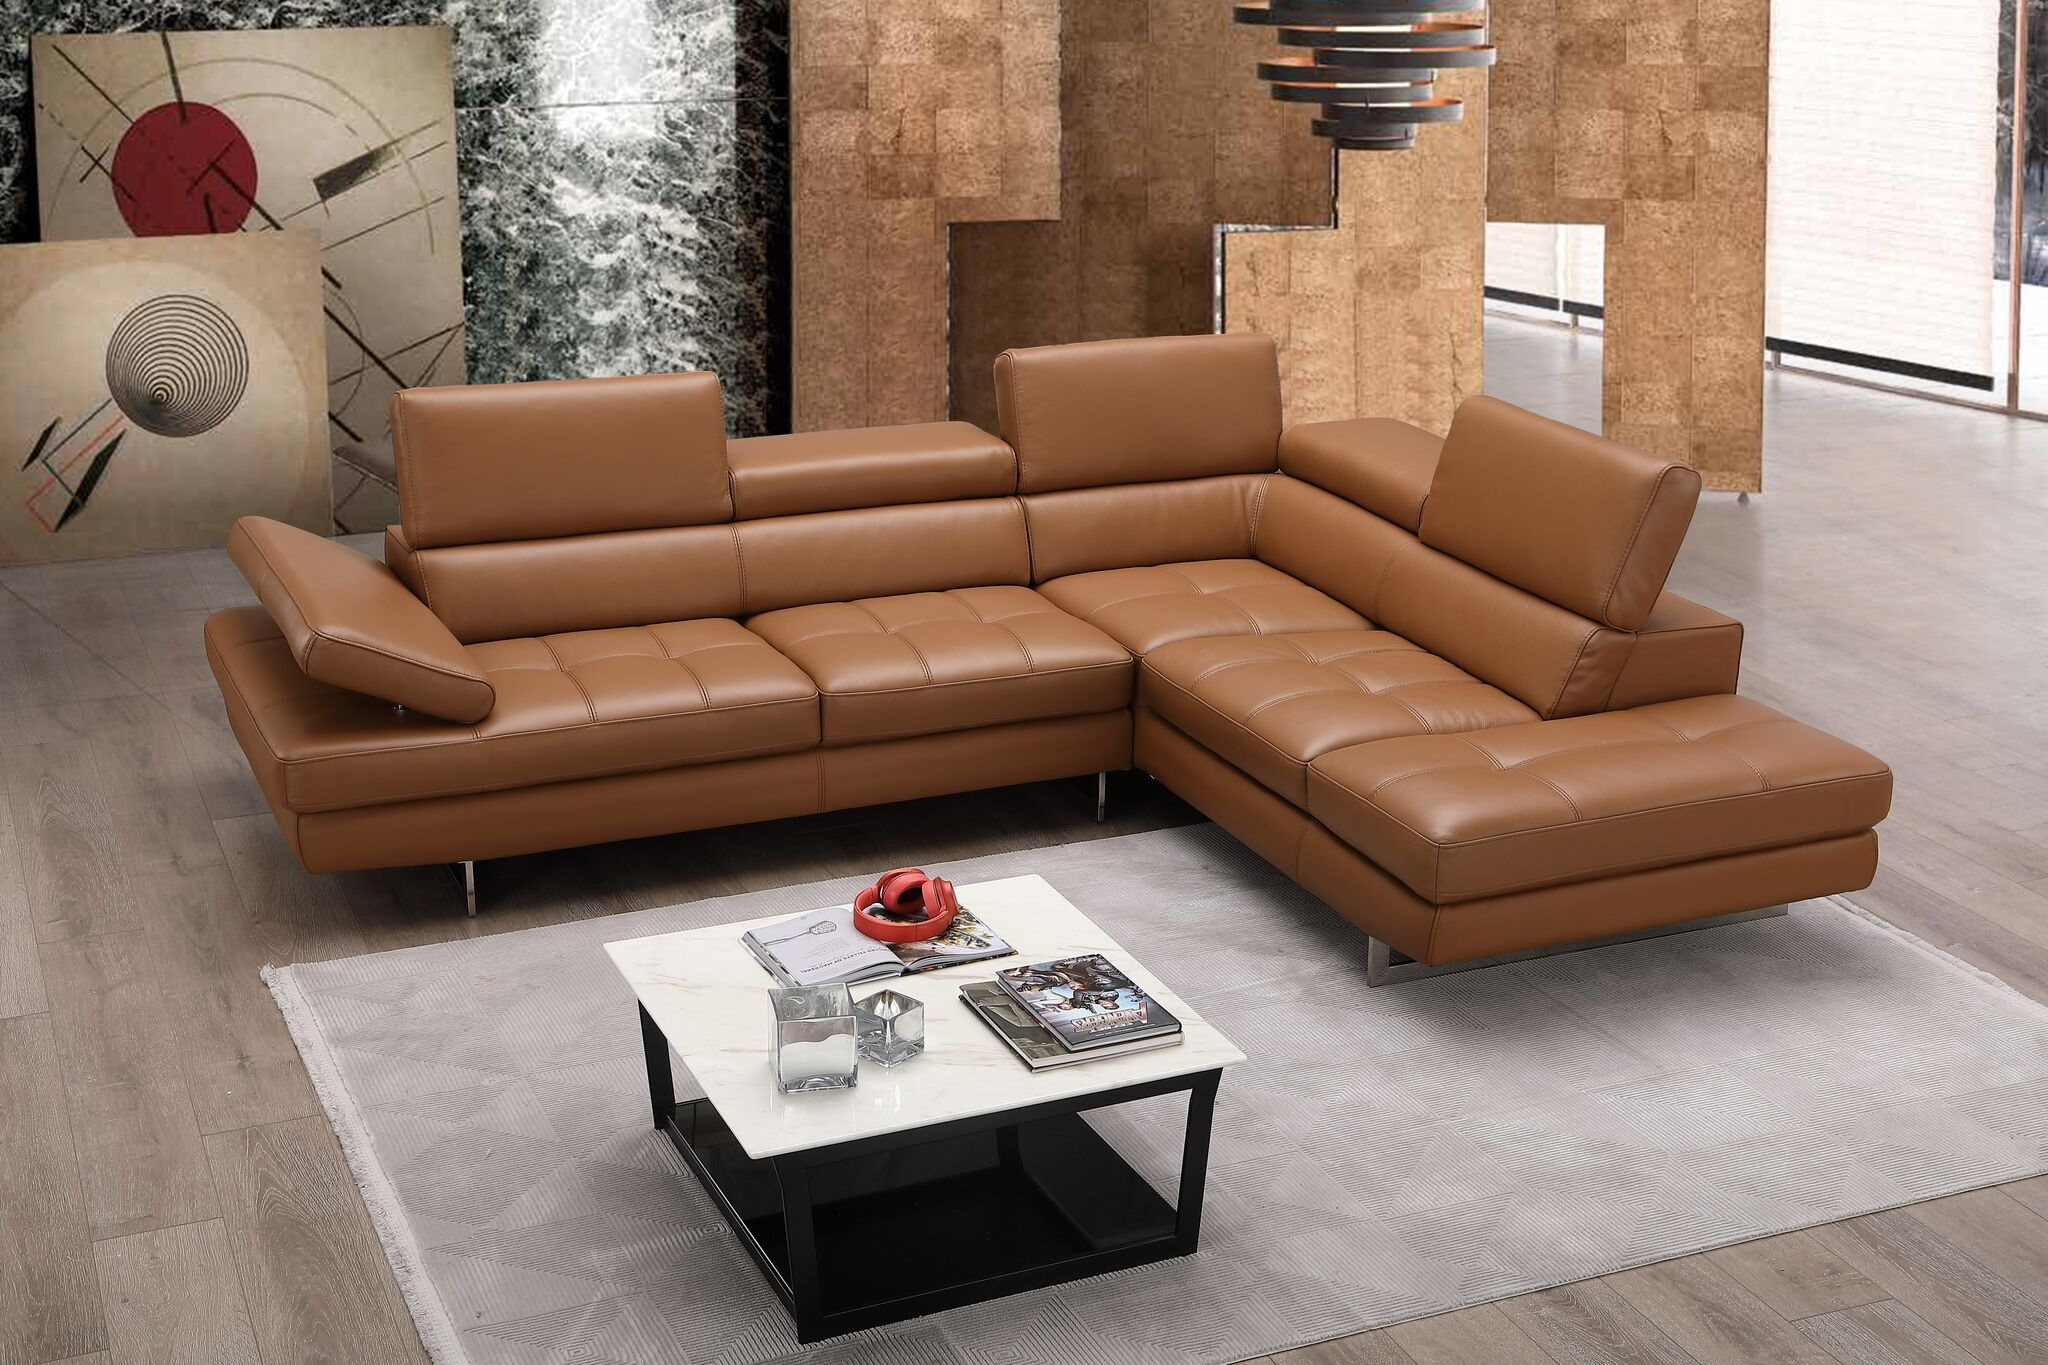 Adjustable Head Cushions Designer Leather Sectional